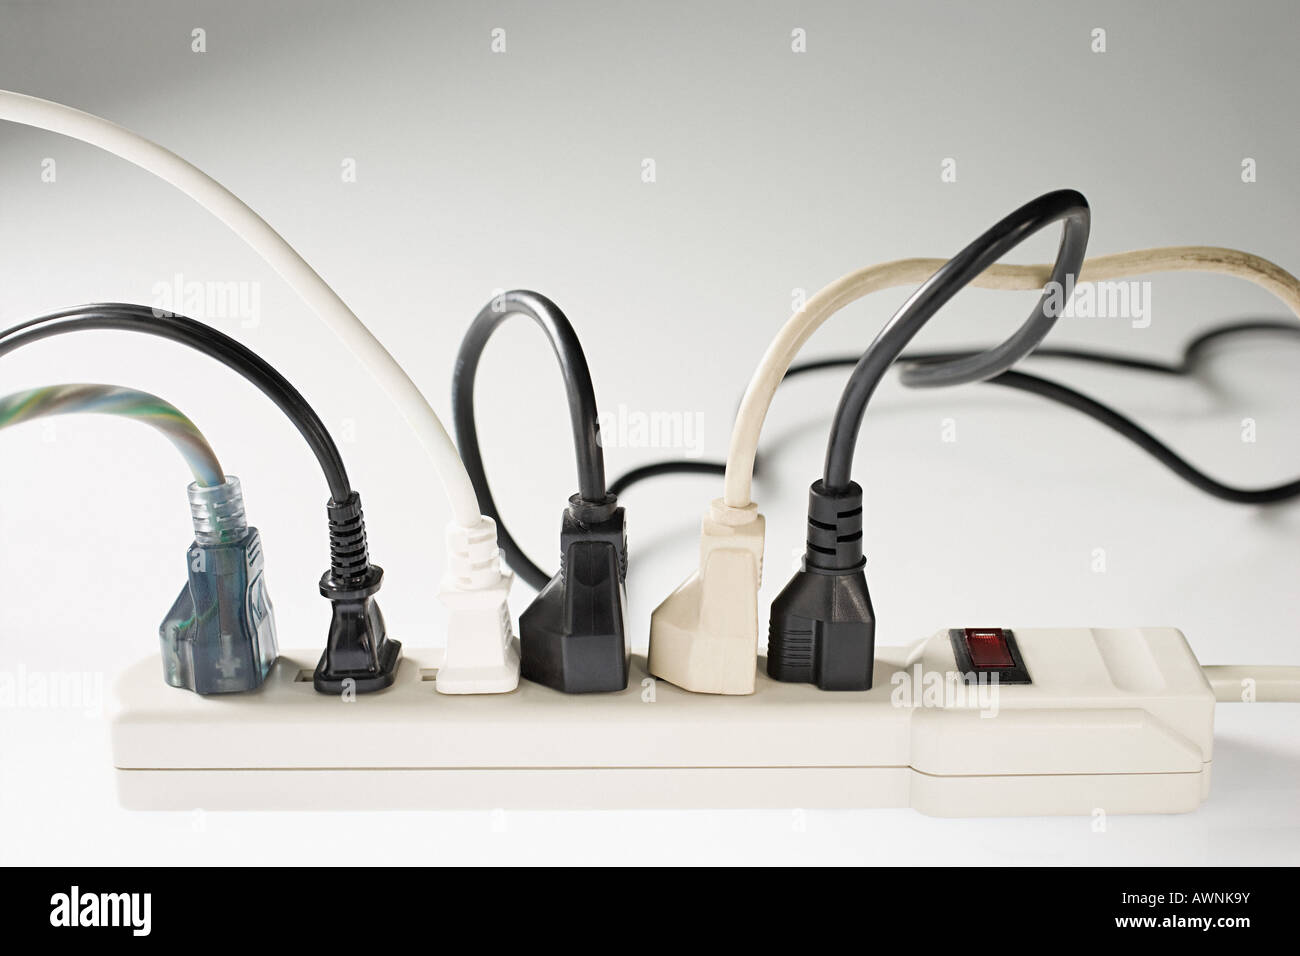 Electric plugs and electrical sockets Stock Photo